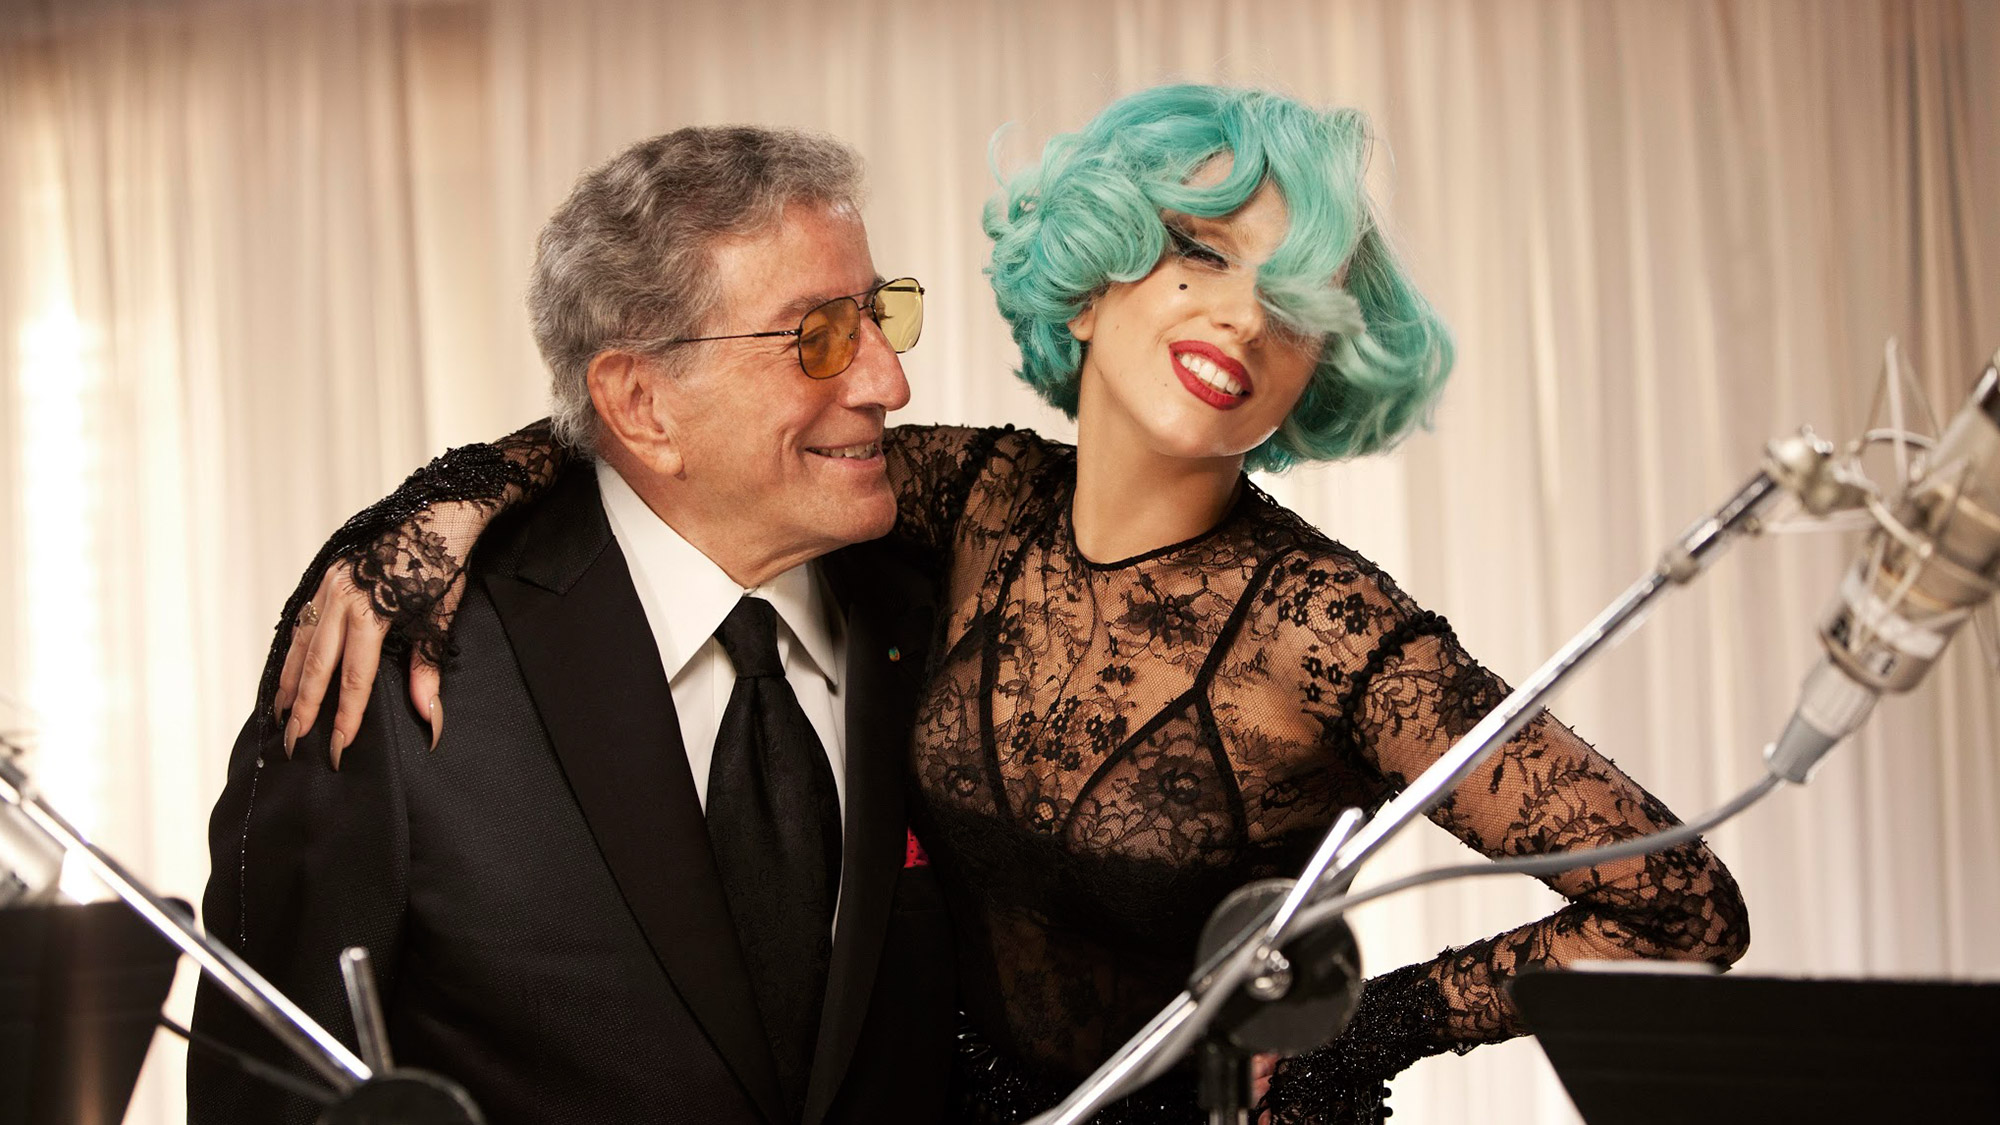 Tony Bennett Lady Gaga 2014